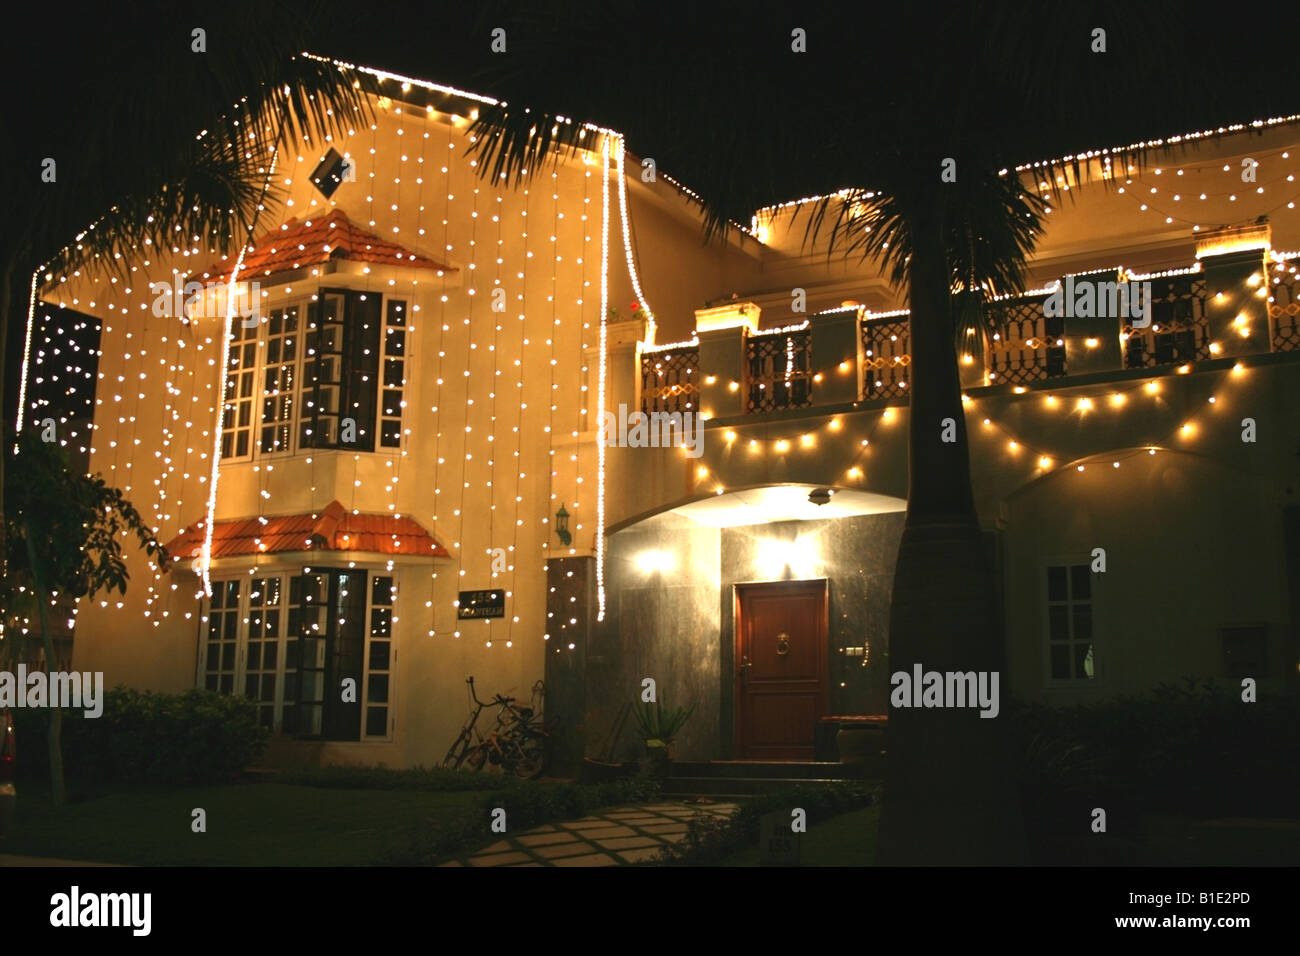 House Lit Up With Lights For The Hindu Festival Of Diwali